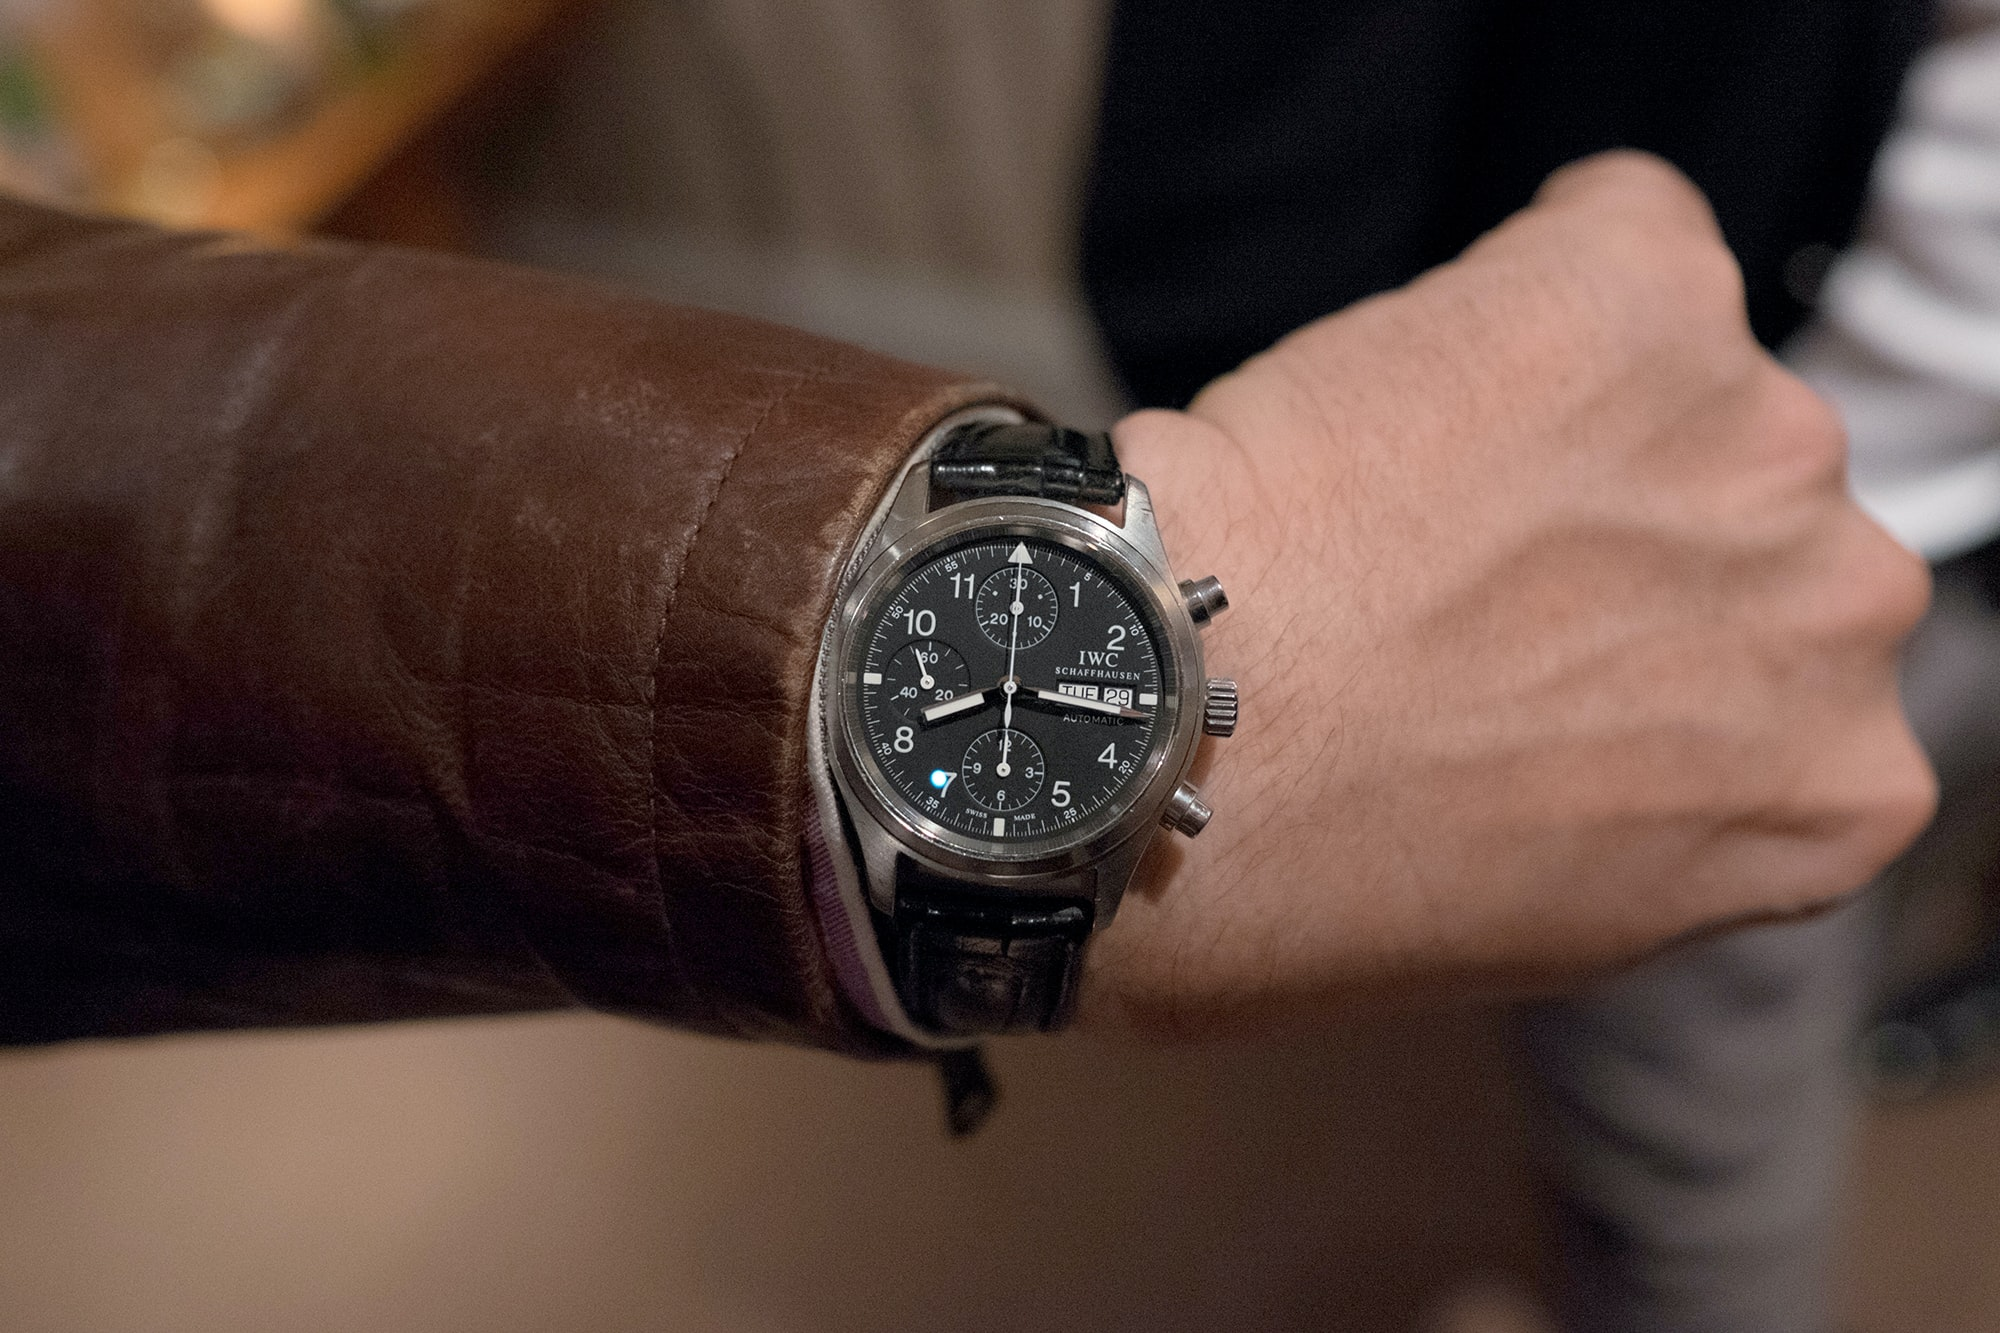 Photo Report: Watch Spotting At The HODINKEE Meet-Up In London (Plus Our Holiday 2016 Pop-Up At Harrods) Photo Report: Watch Spotting At The HODINKEE Meet-Up In London (Plus Our Holiday 2016 Pop-Up At Harrods) Hodinkee event 29 nov 2016 78